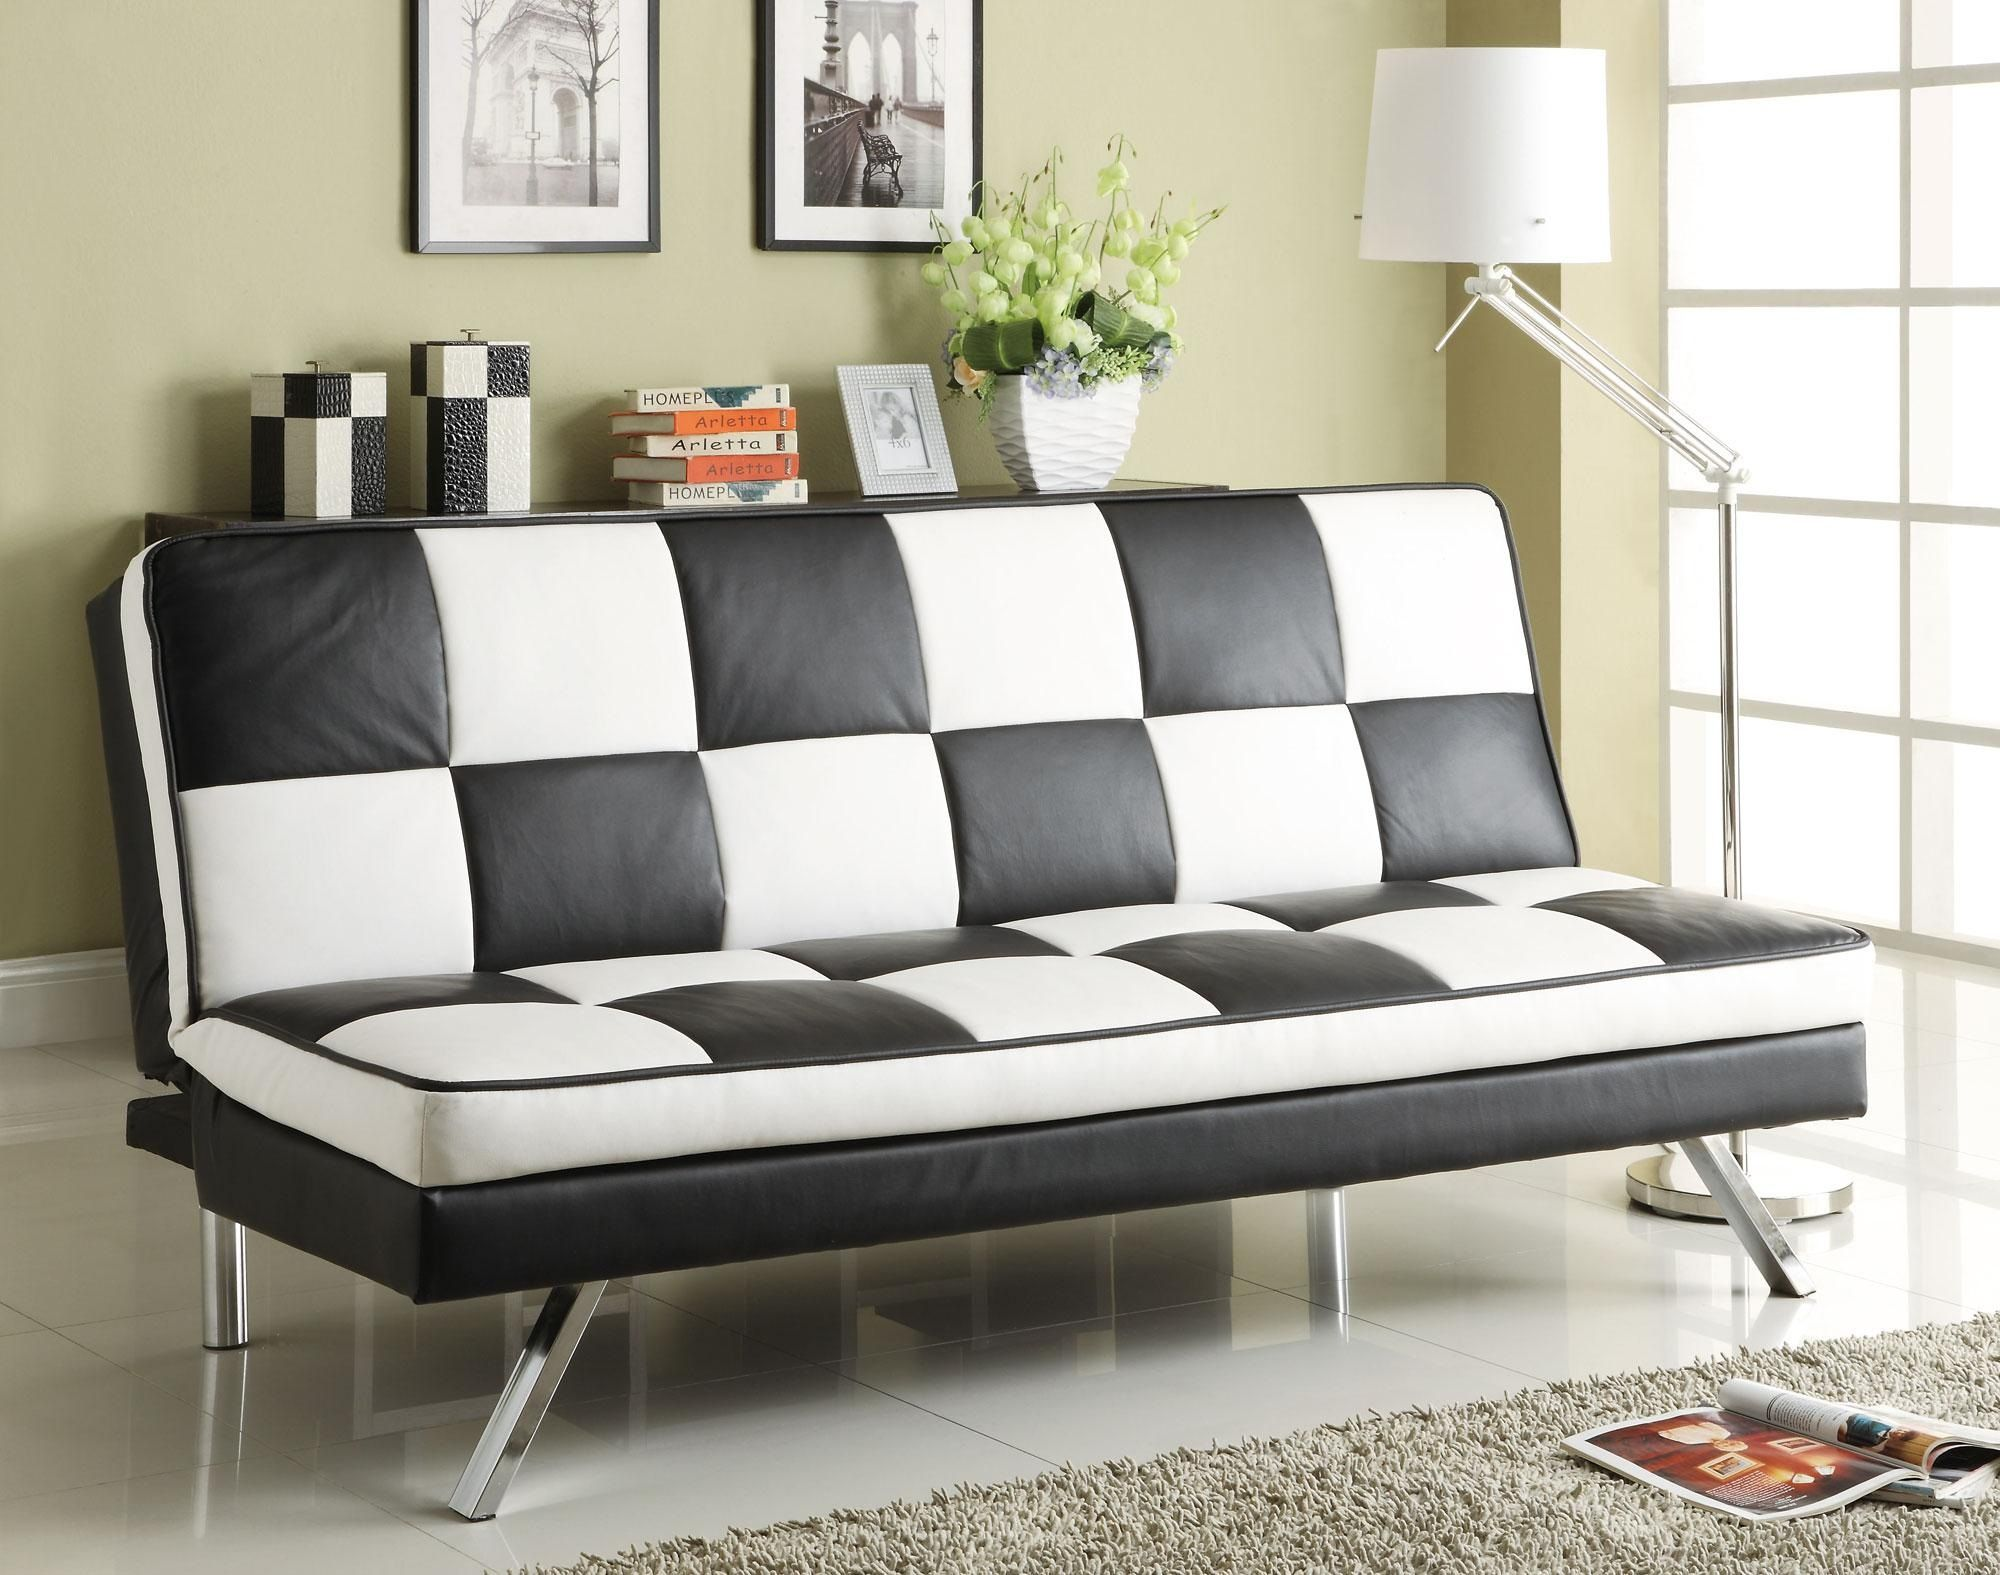 Checkerboard Black And White Klik Klak